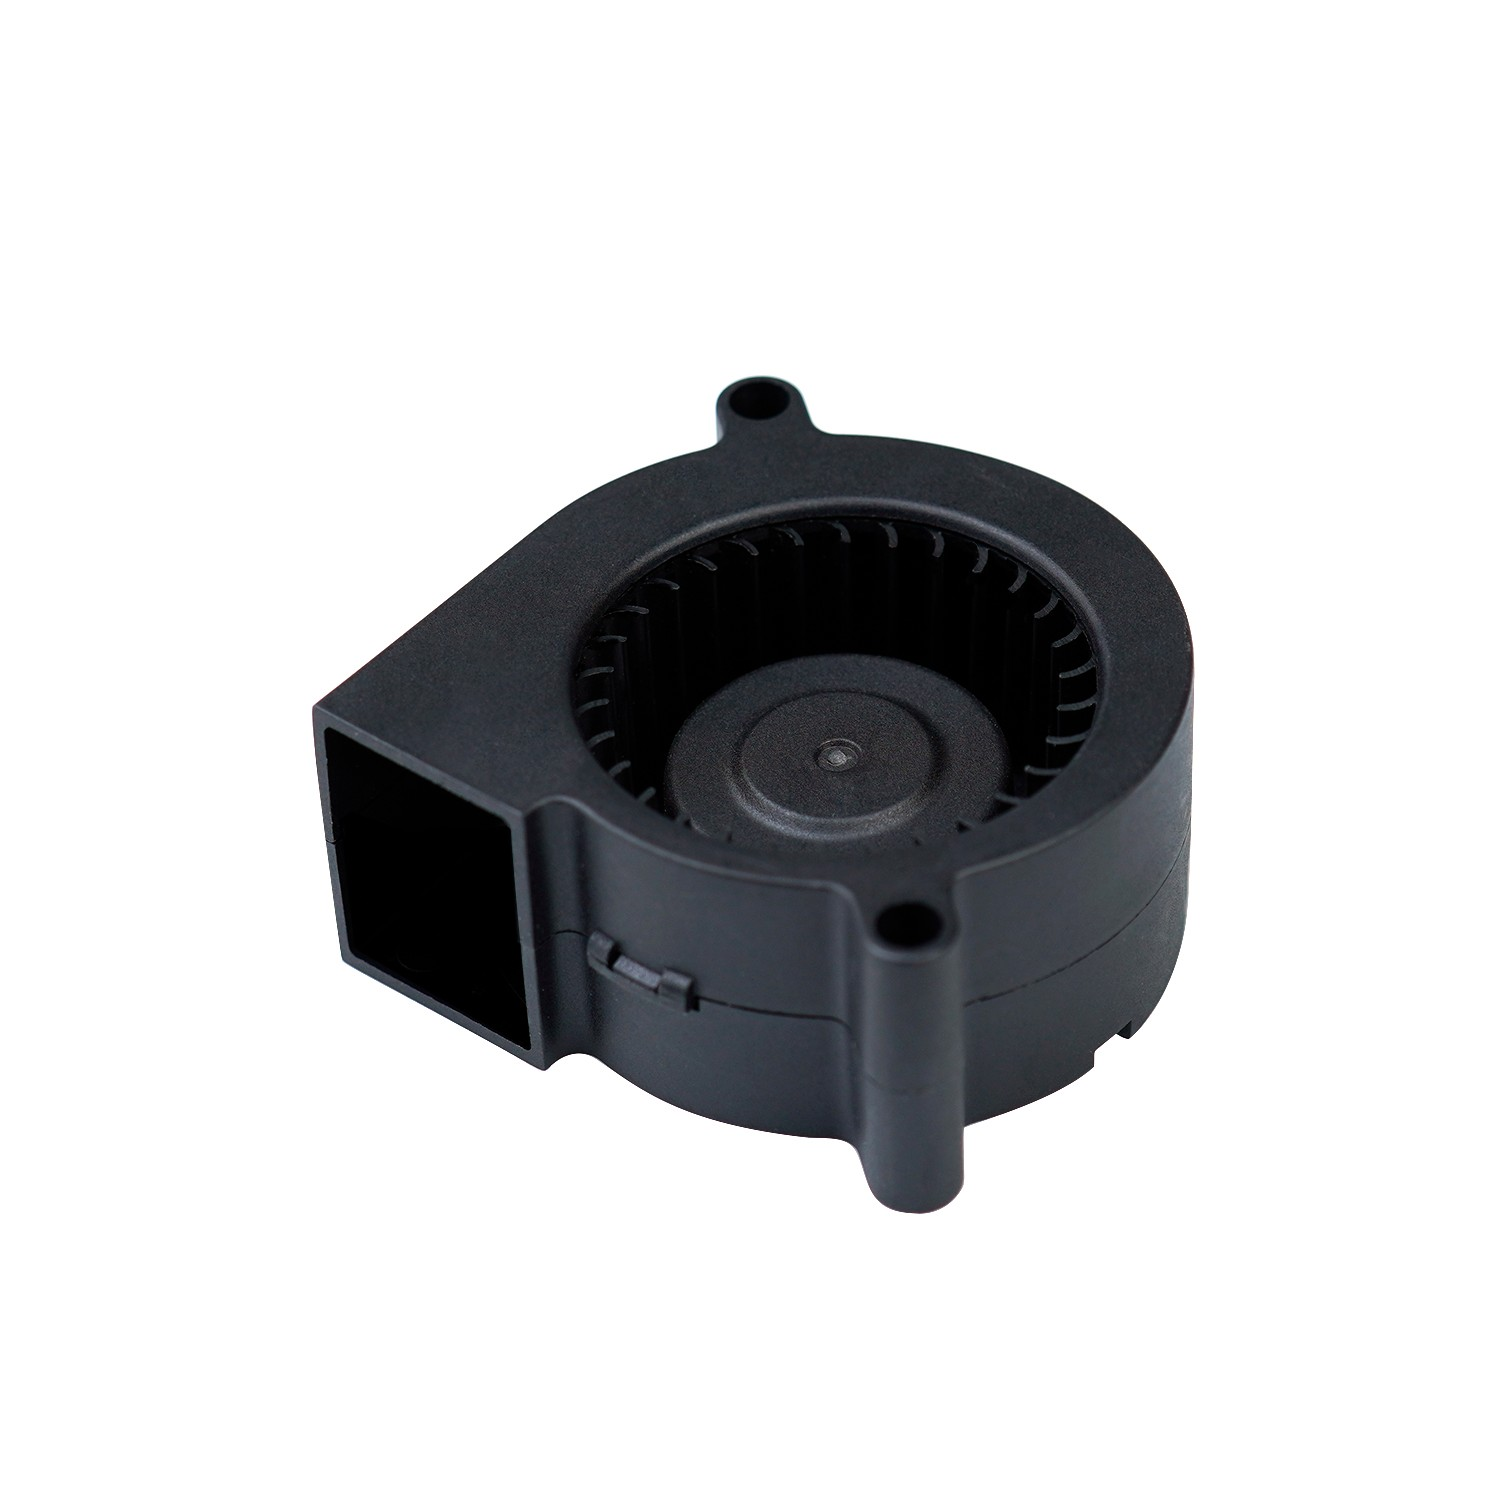 50mm Low Noise Cooling Fan With High Quality 12 Volt Dc Blower Fan for Computer Manufacturers, 50mm Low Noise Cooling Fan With High Quality 12 Volt Dc Blower Fan for Computer Factory, Supply 50mm Low Noise Cooling Fan With High Quality 12 Volt Dc Blower Fan for Computer